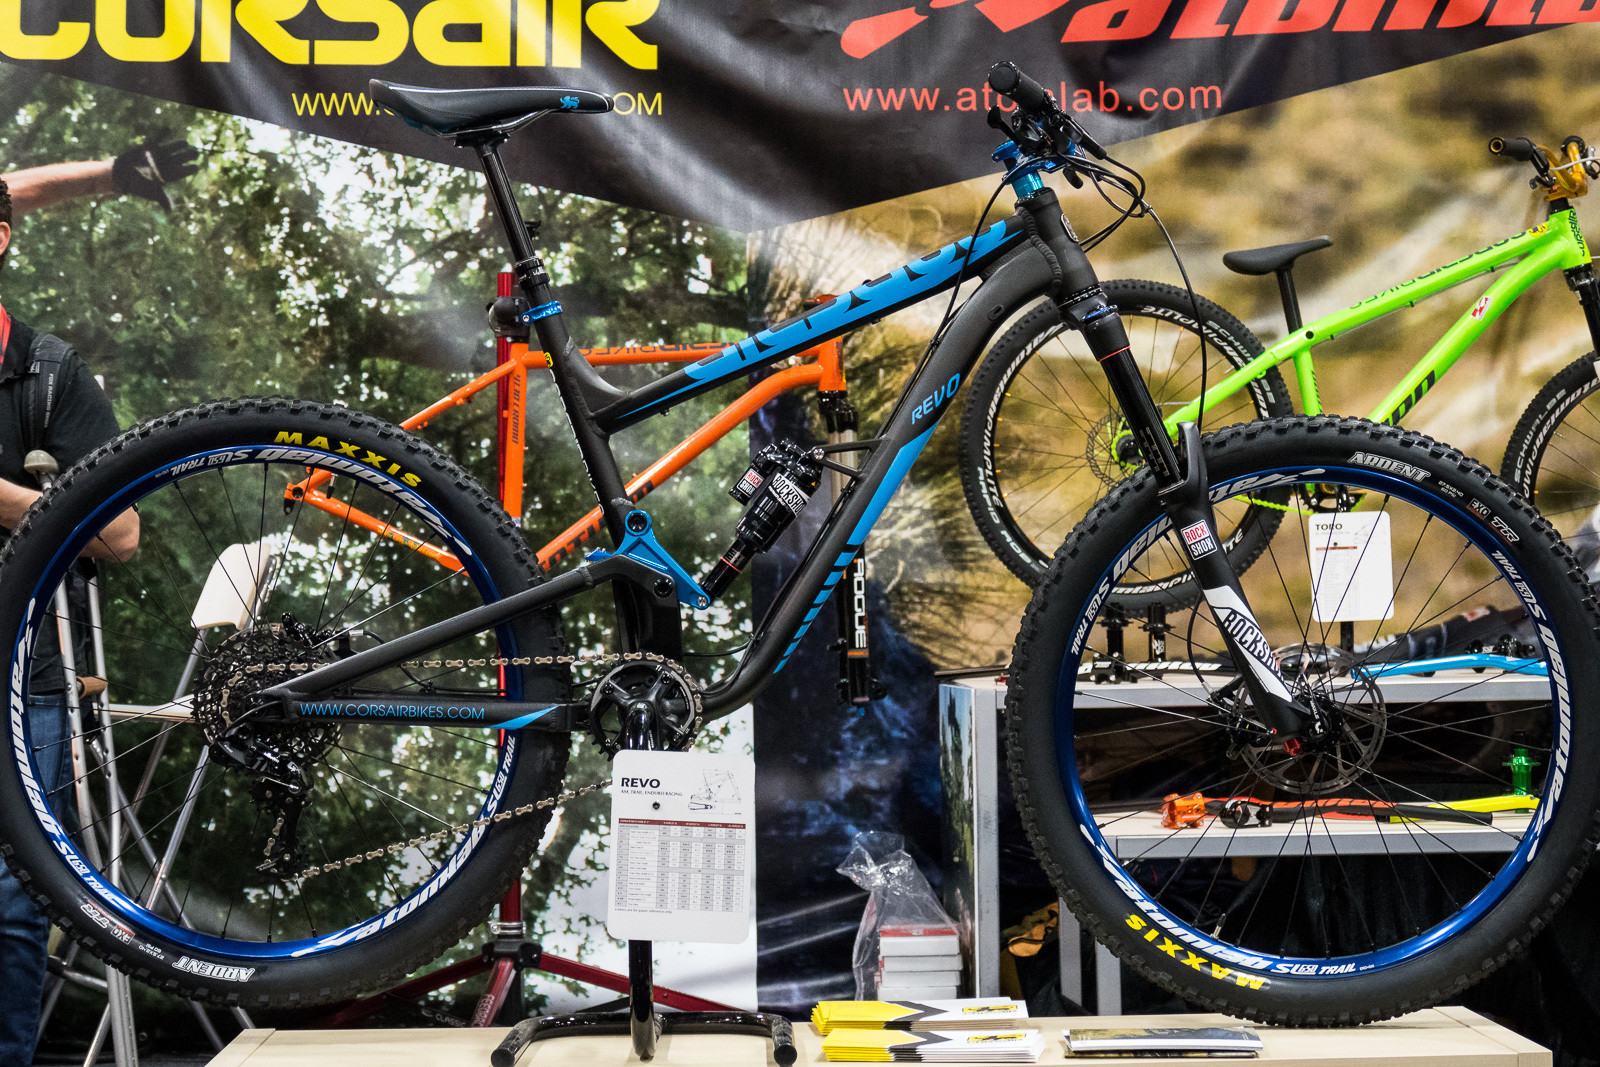 2016 Corsair Revo - 2016 Trail and Enduro Bikes at Interbike - Mountain Biking Pictures - Vital MTB